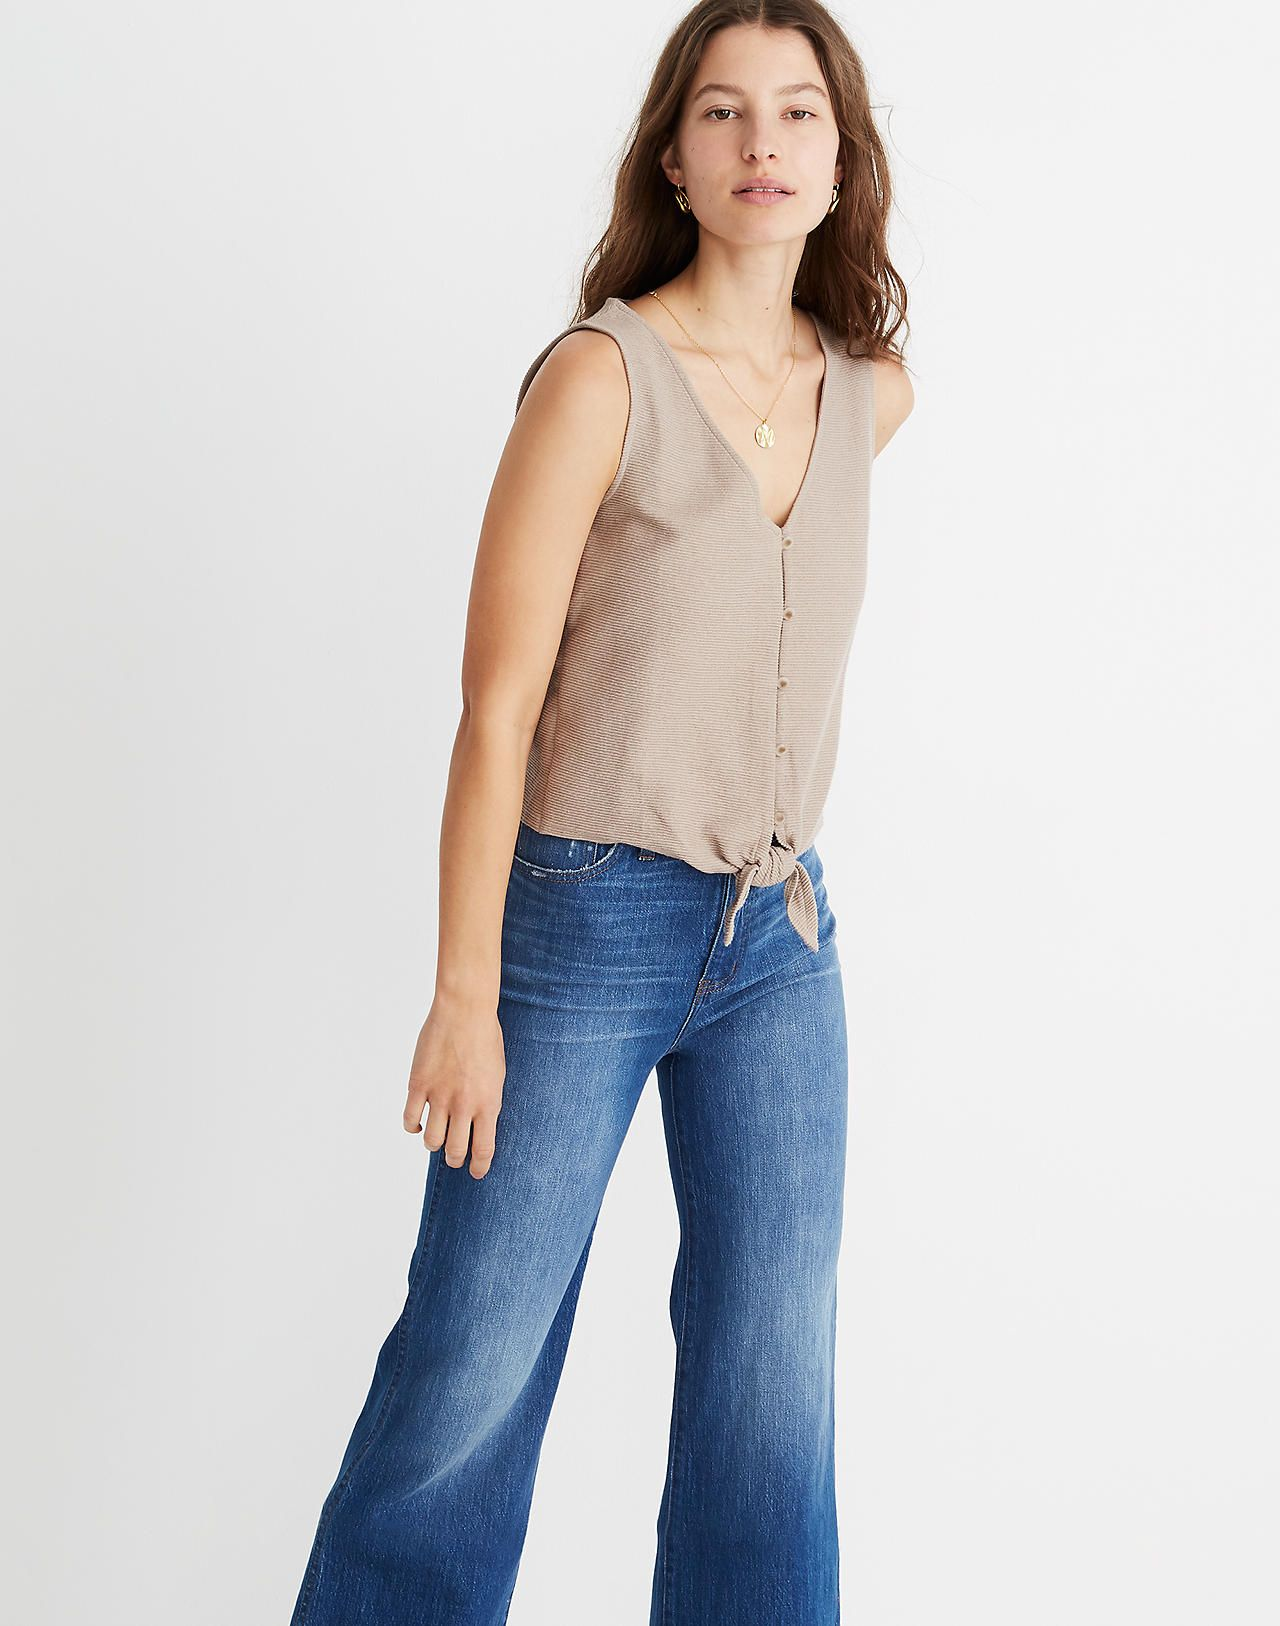 801adc1522 Texture & Thread Button-Front Tie Tank Top / Stitch Fix, Madewell, Bell